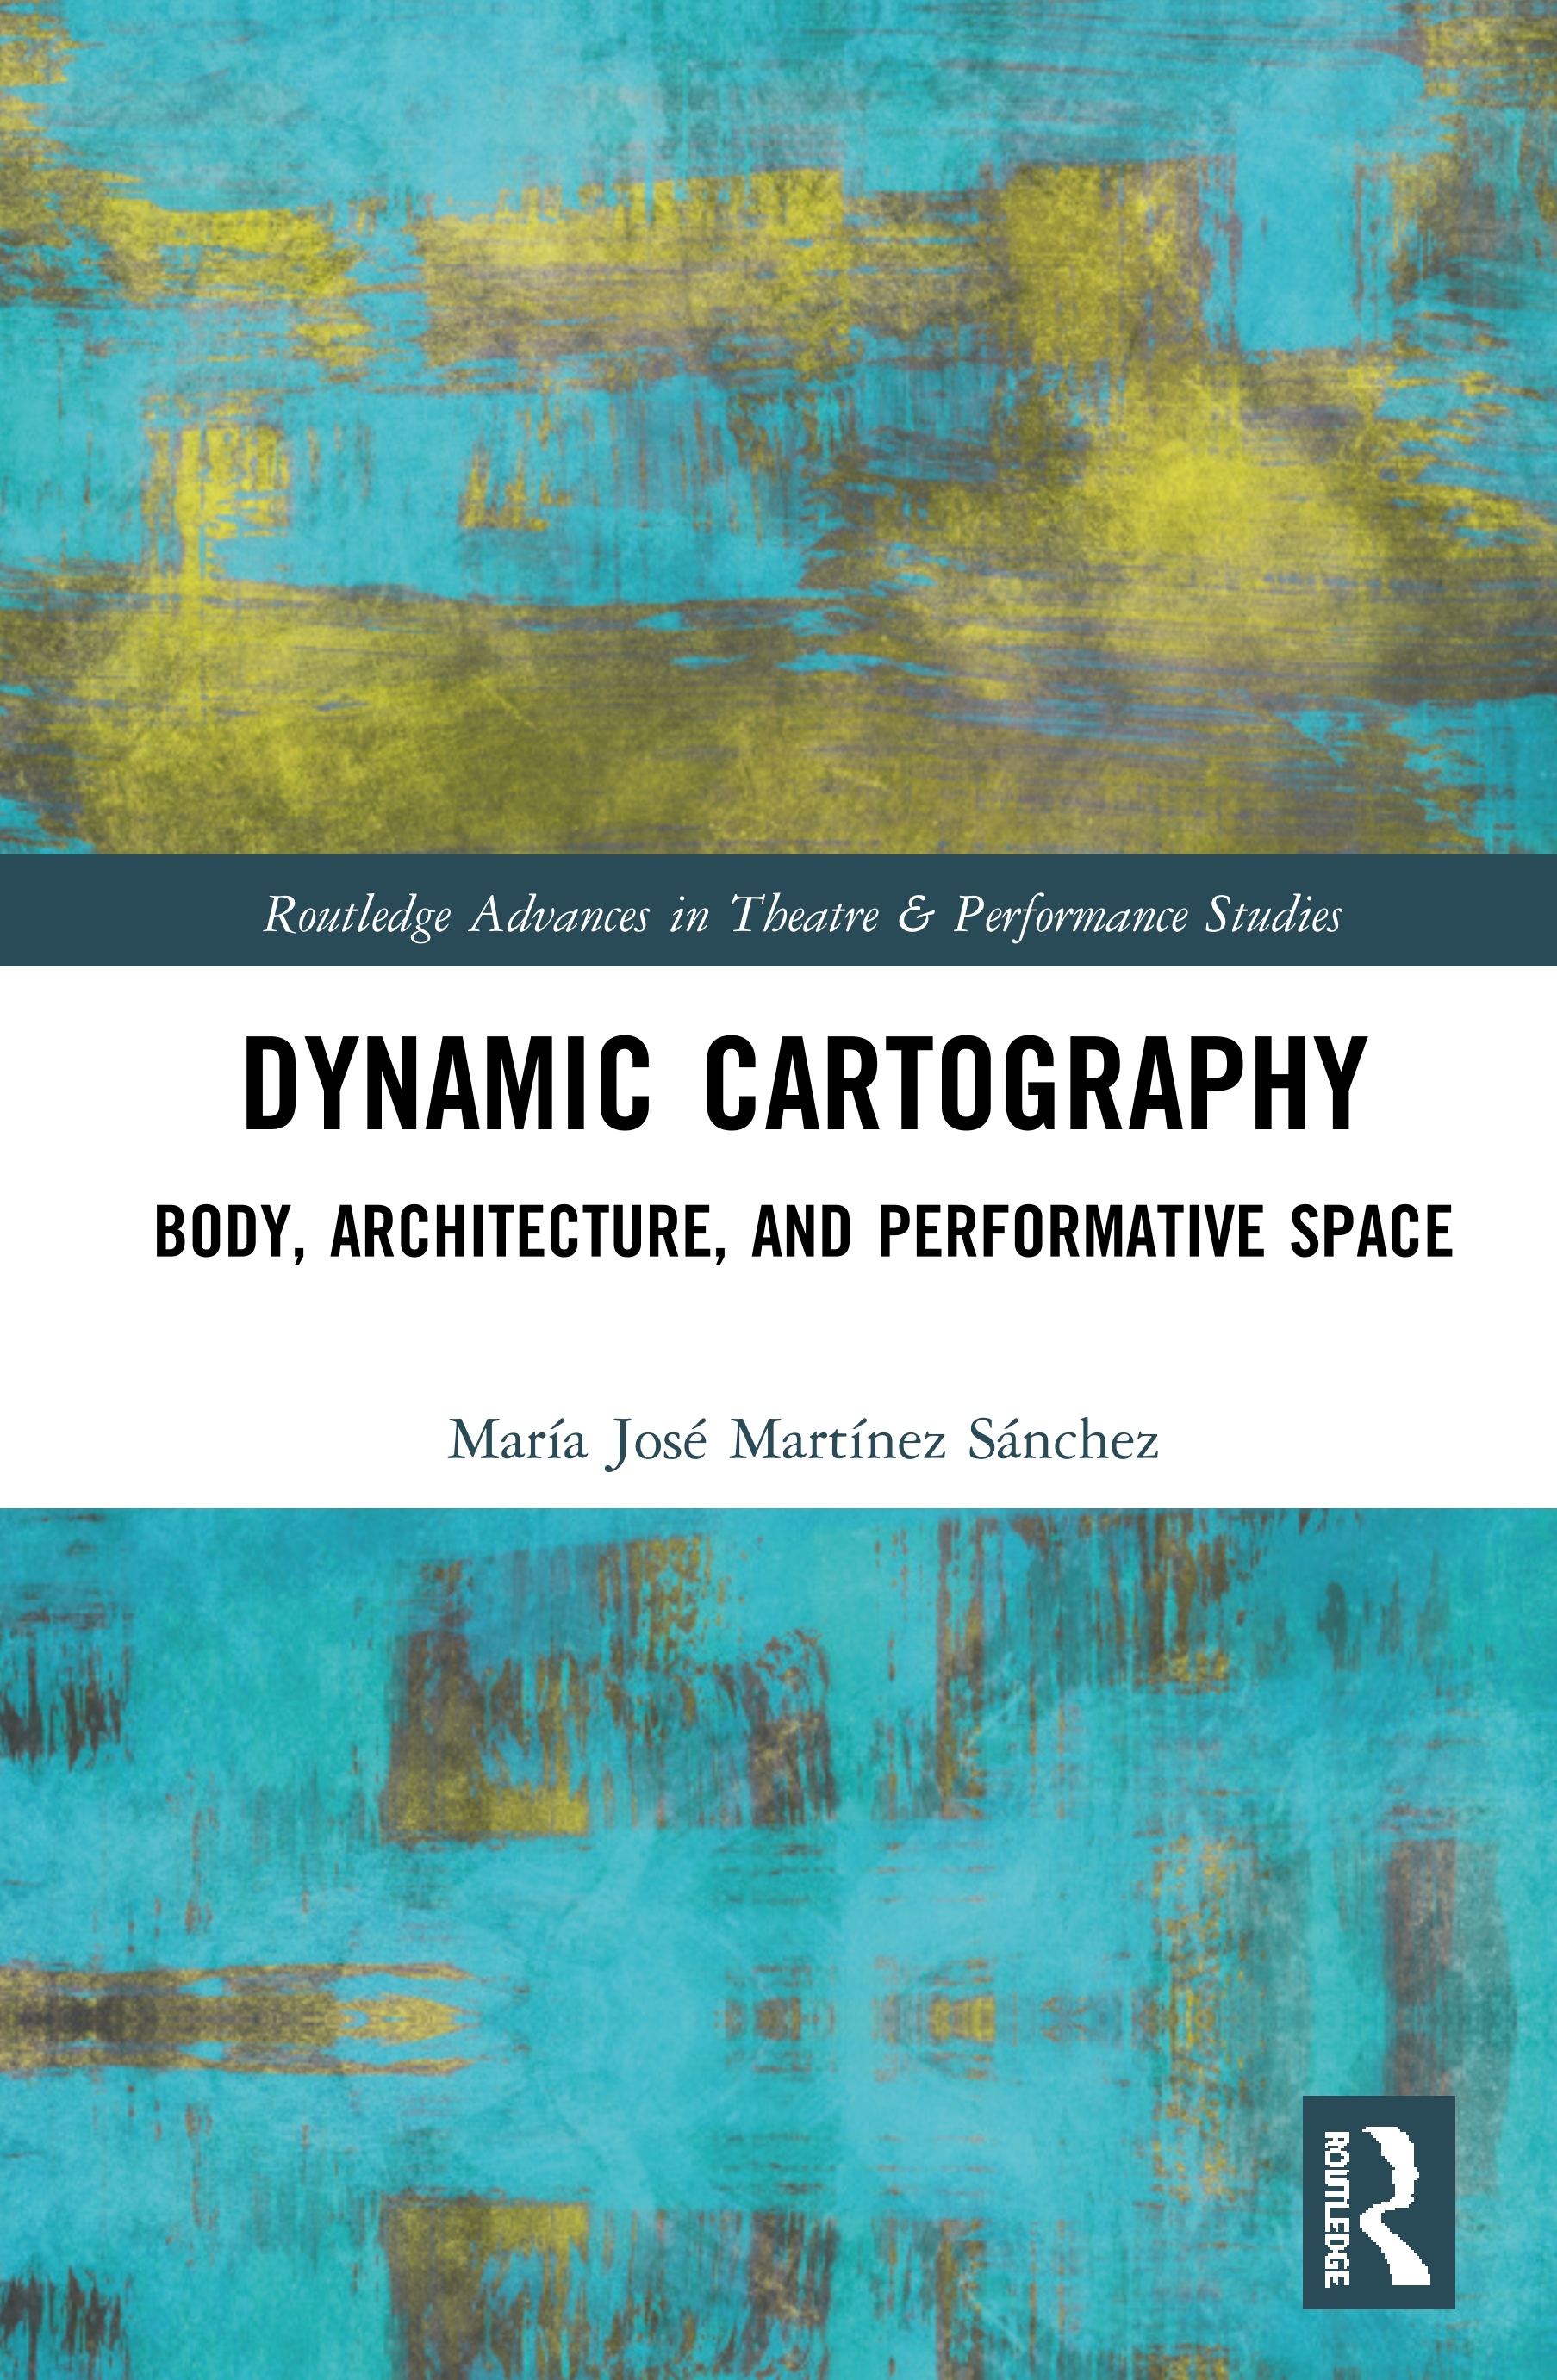 dynamic cartography maria jose martinez sanchez locus upm routledge